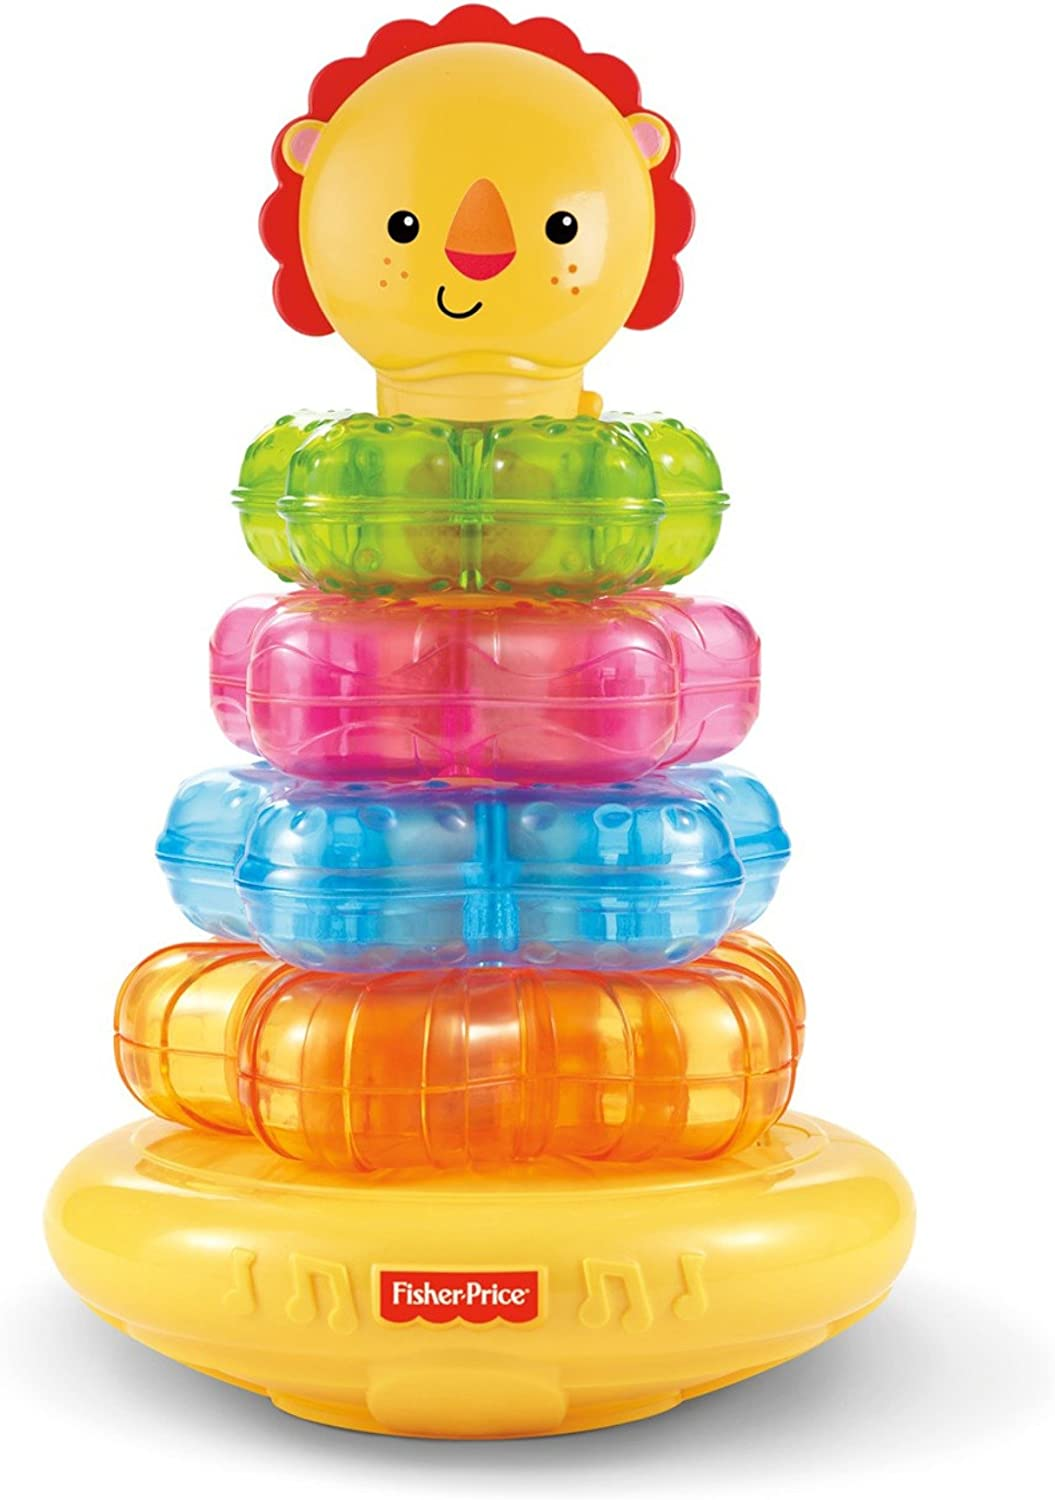 Top 10 Best Baby Stacking Toys (2020 Reviews & Buying Guide) 5